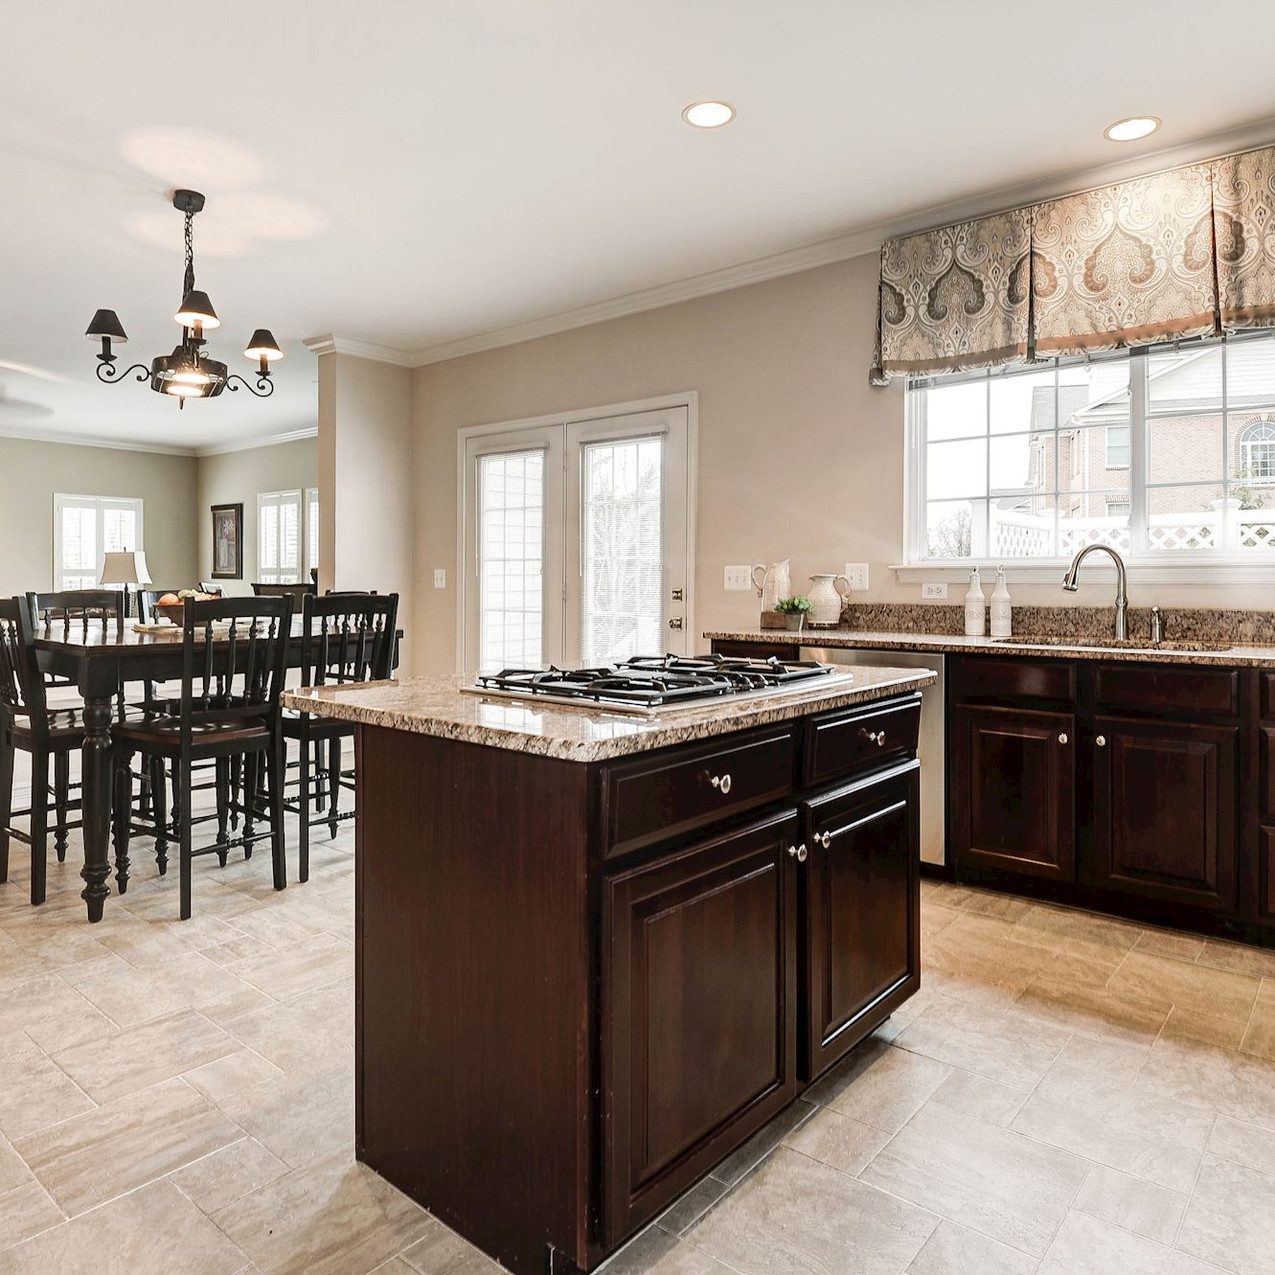 Center Kitchen Island